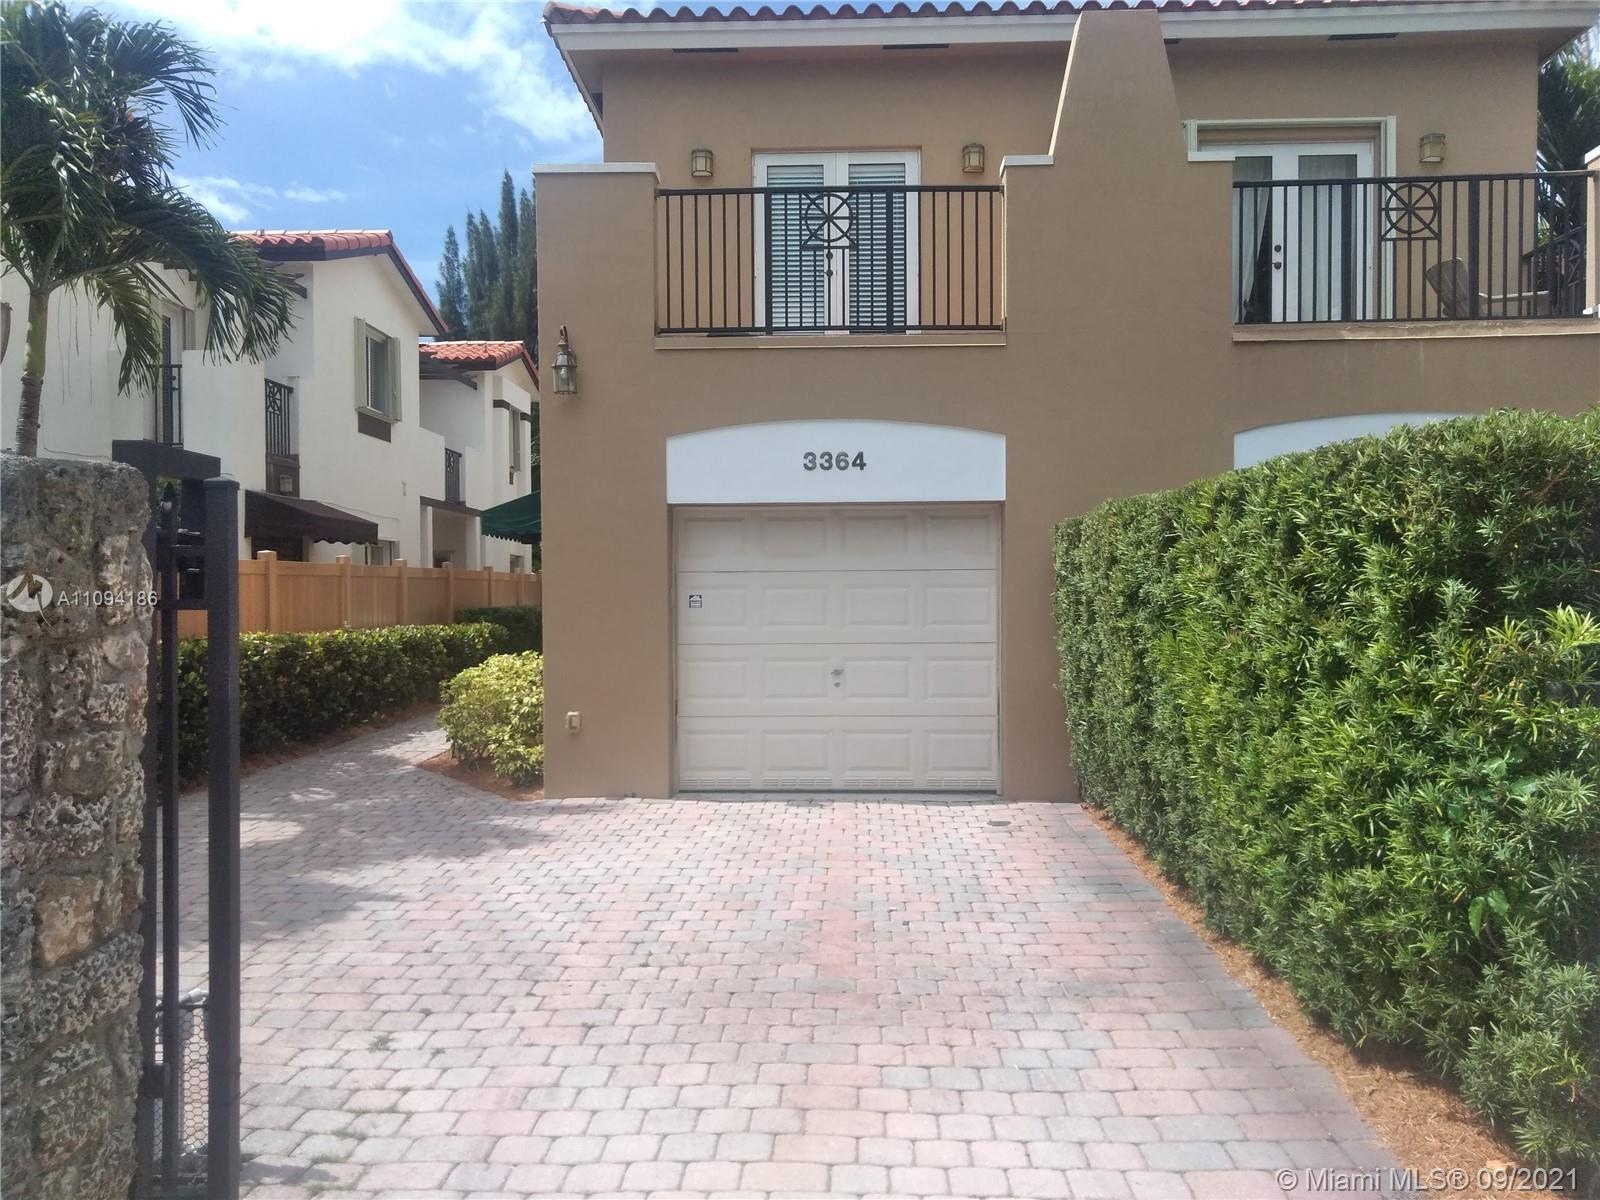 Grove lifestyle on the edge of Coral Gables. Executive TH built in 2005.  Large master suite has lavish bath with walk in shower, jacuzzi tub, bidet & 2 sinks.  2 other bedrooms upstairs + full bath,  laundry room (new washing machine).  Cook's kitchen with black granite counters, Bosch stainless appliances, desk area and 2 pantries. Liv room/separate din room and family room leads to newly fenced backyard with wood deck for Fla entertaining. Every room has lots of light with a french door opening to small balcony. Alarm, 1 car garage, electric front gate.  Brick front driveway large enough for 2 cars.  Douglas Park nearby. Close to Metrorail, Bascom Palmer, Mercy Hospital.  Minutes to A/P, Gables/Grove nightlife and business districts.  Dog ok with deposit, no more than 30 lbs.